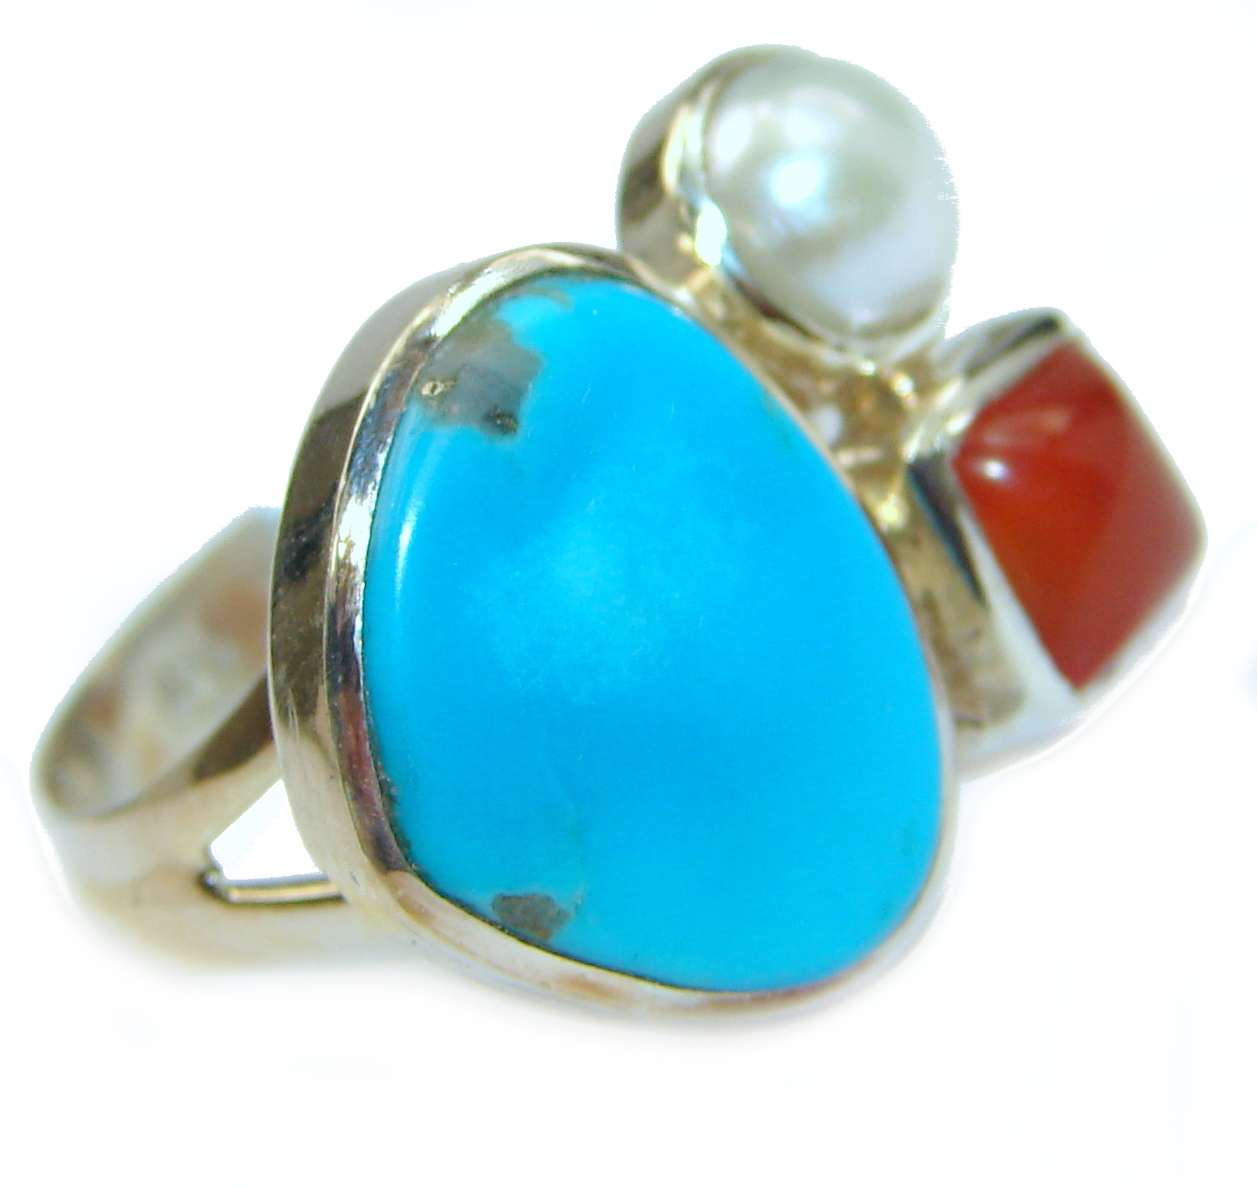 Genuine Sleeping Beauty Turquoise .925 Sterling Silver Ring size 7 adjustable